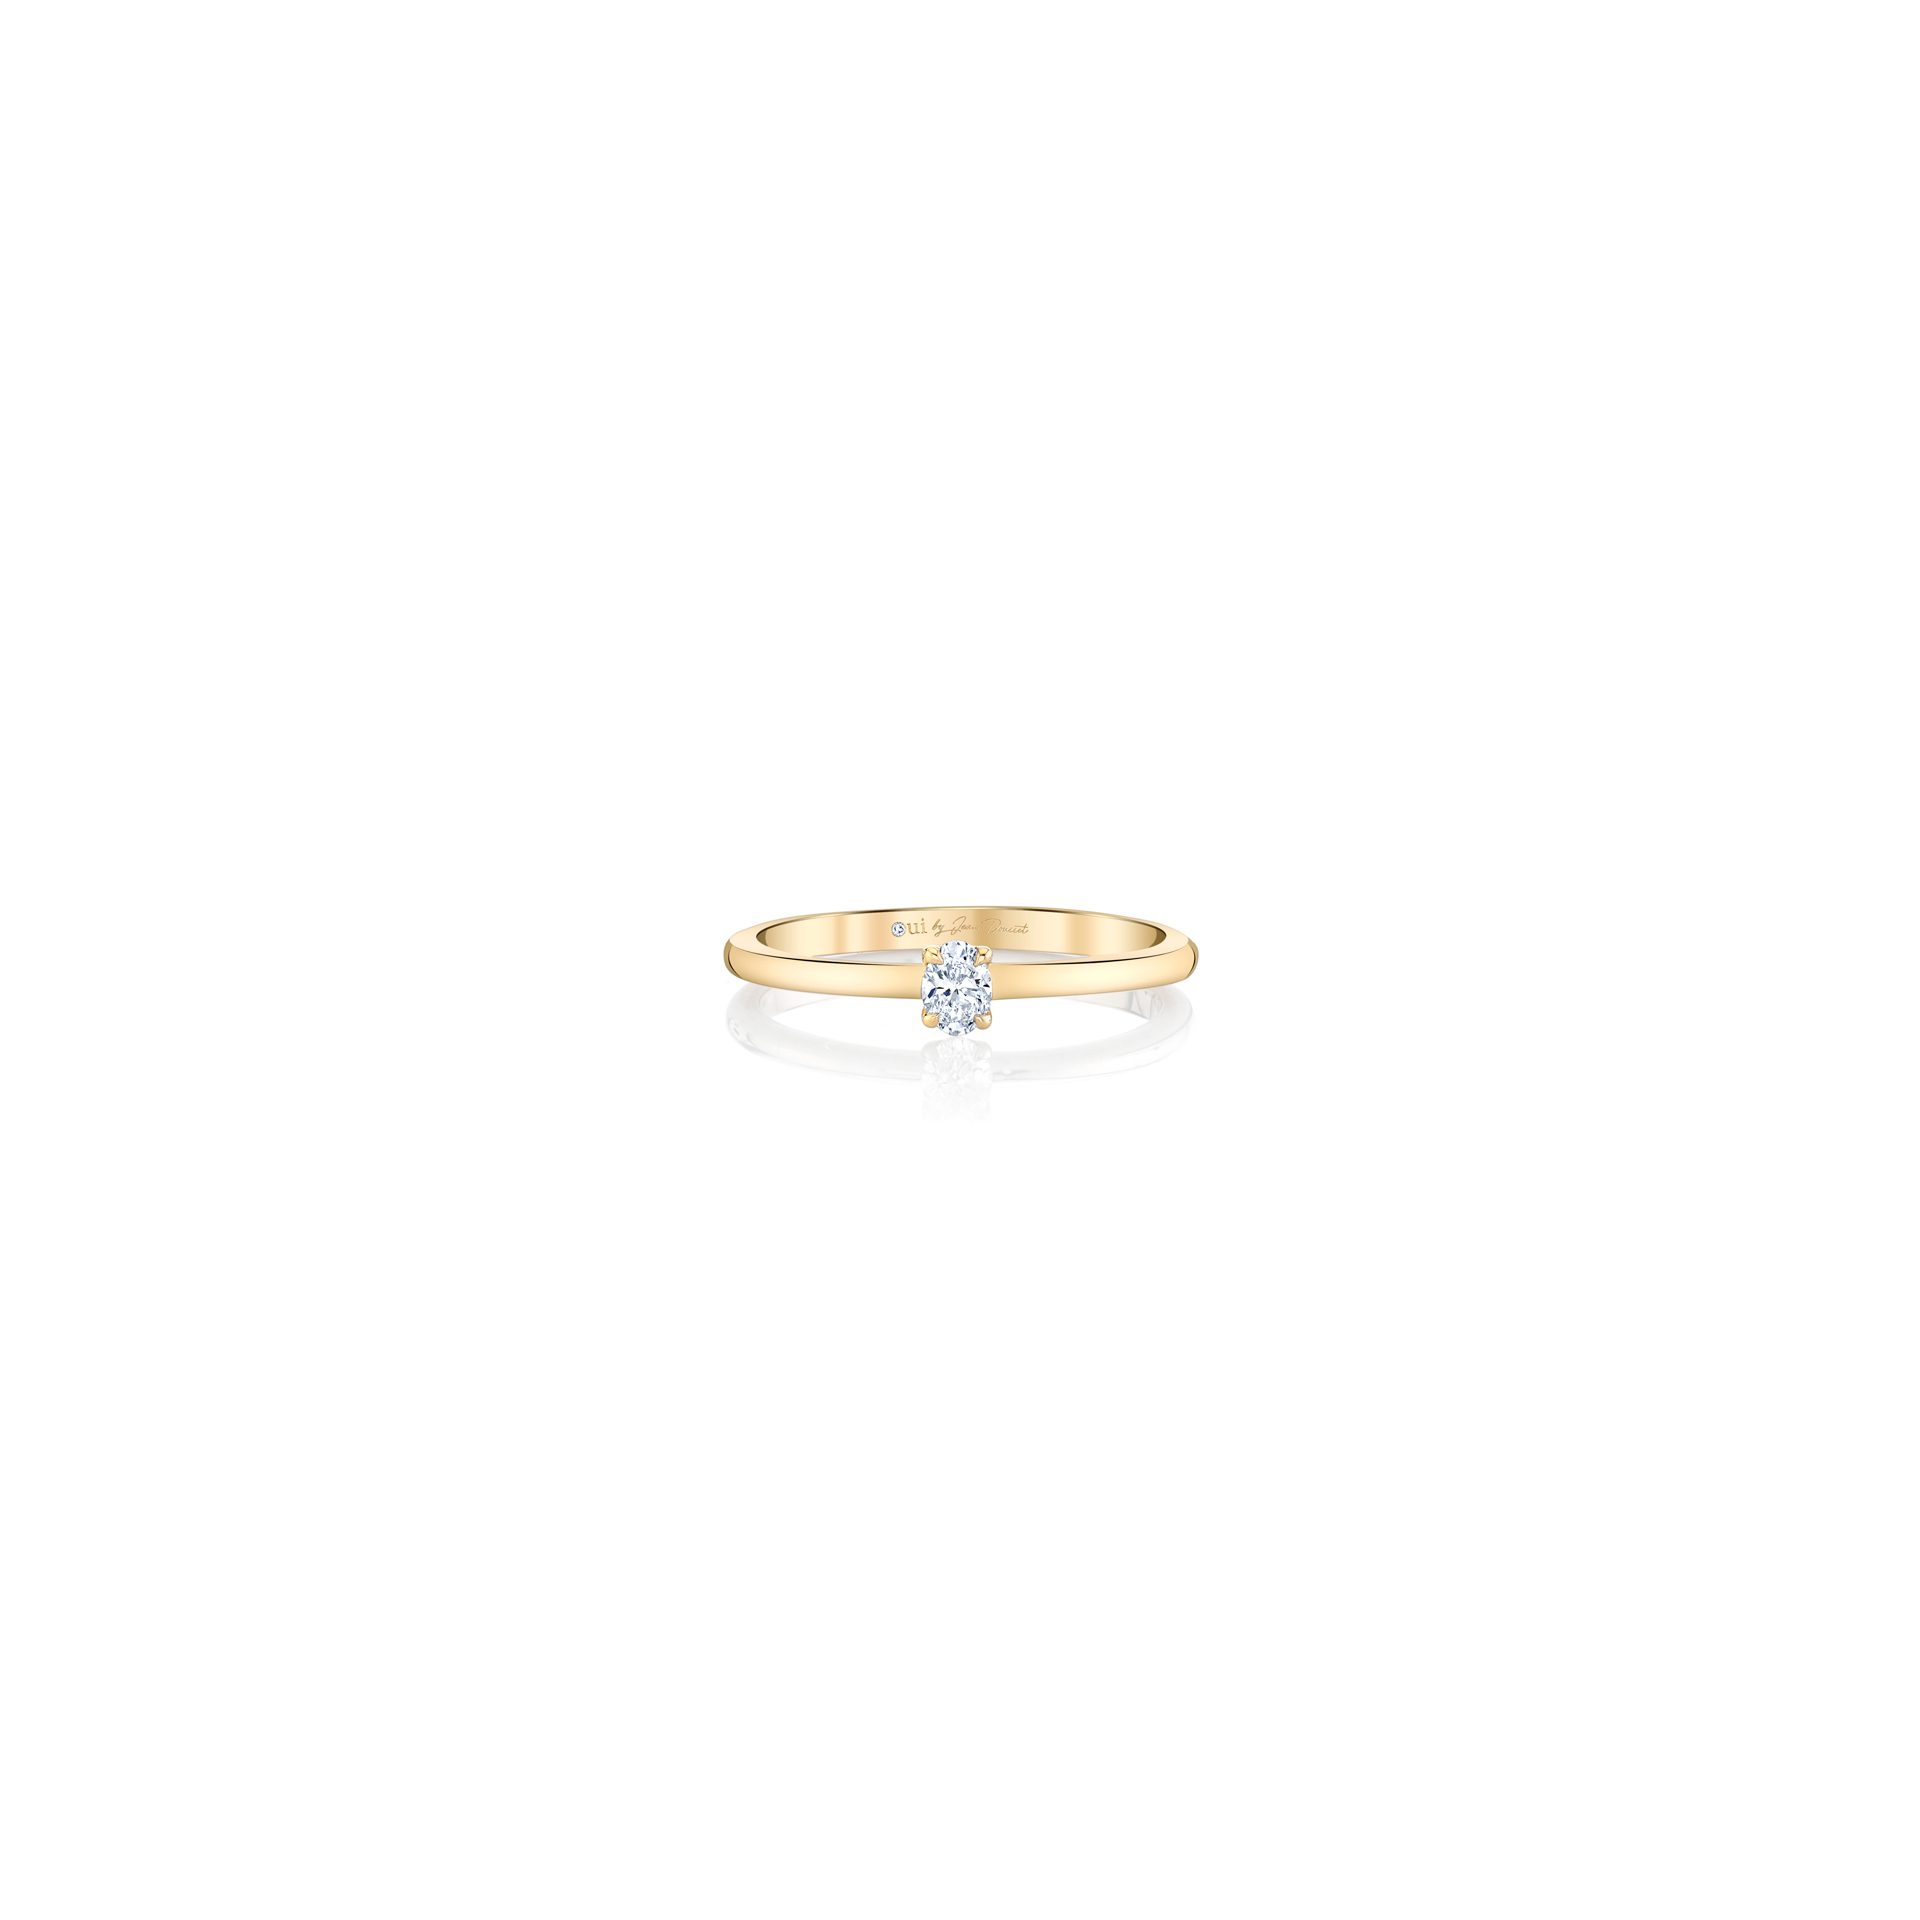 La Petite Oval Diamond Wedding Band in 18k Yellow Gold Front View Front View by Oui by Jean Dousset